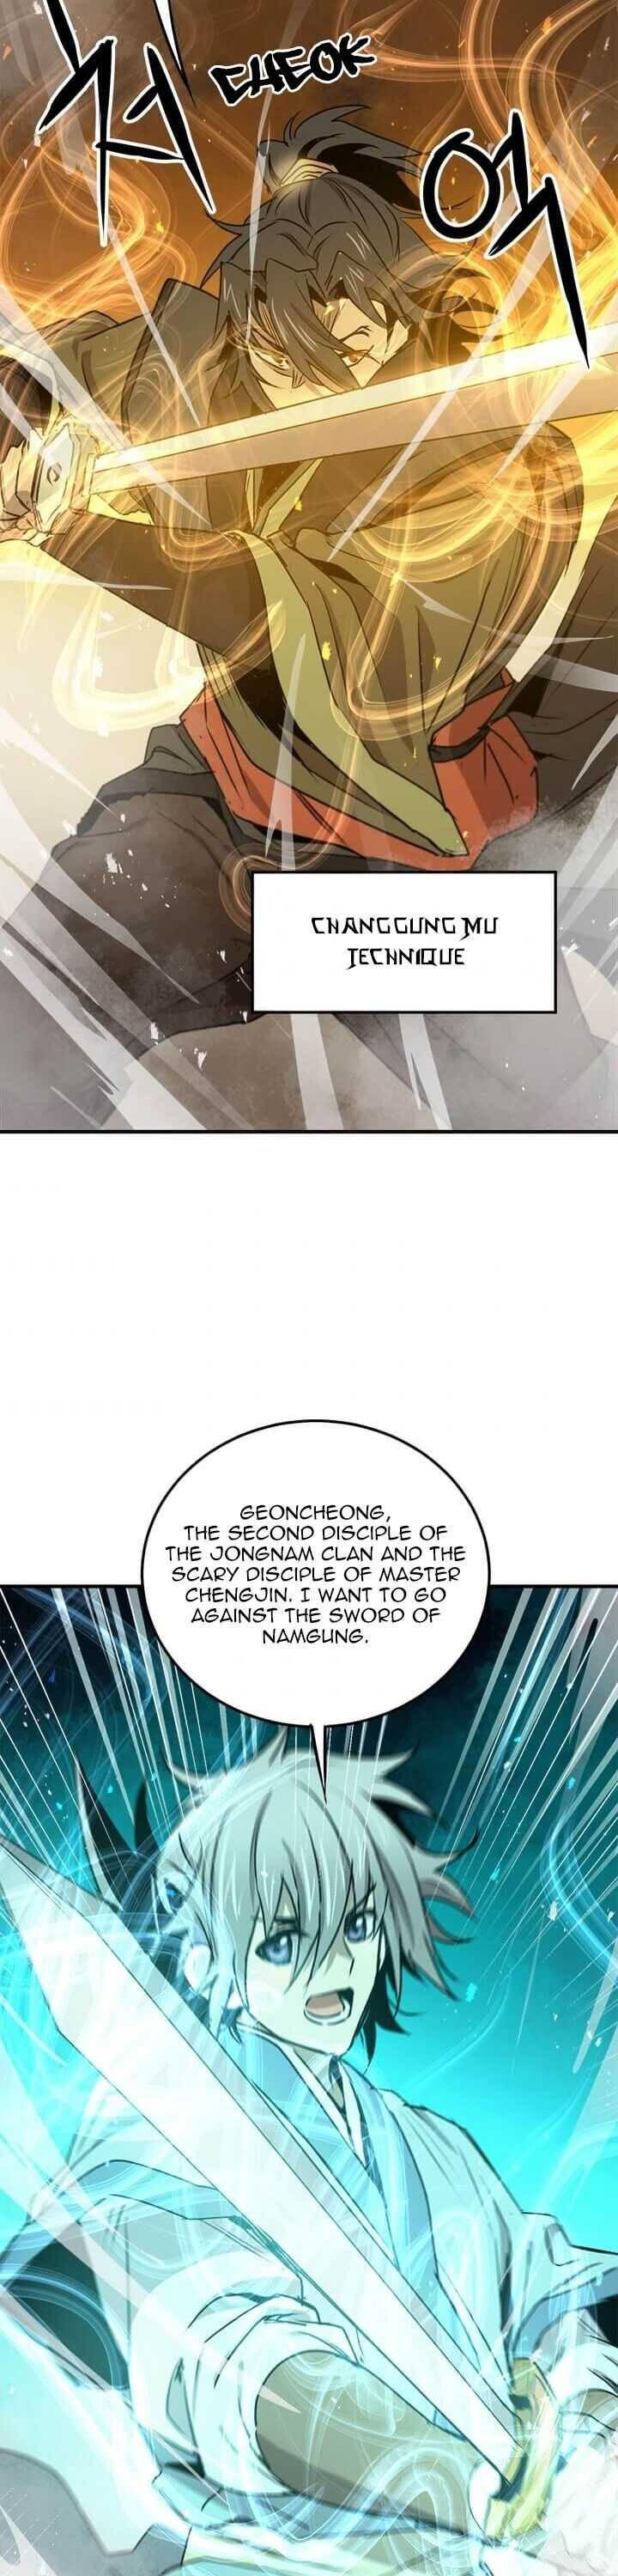 Strongest Fighter Chapter 34 page 28 - Mangakakalots.com